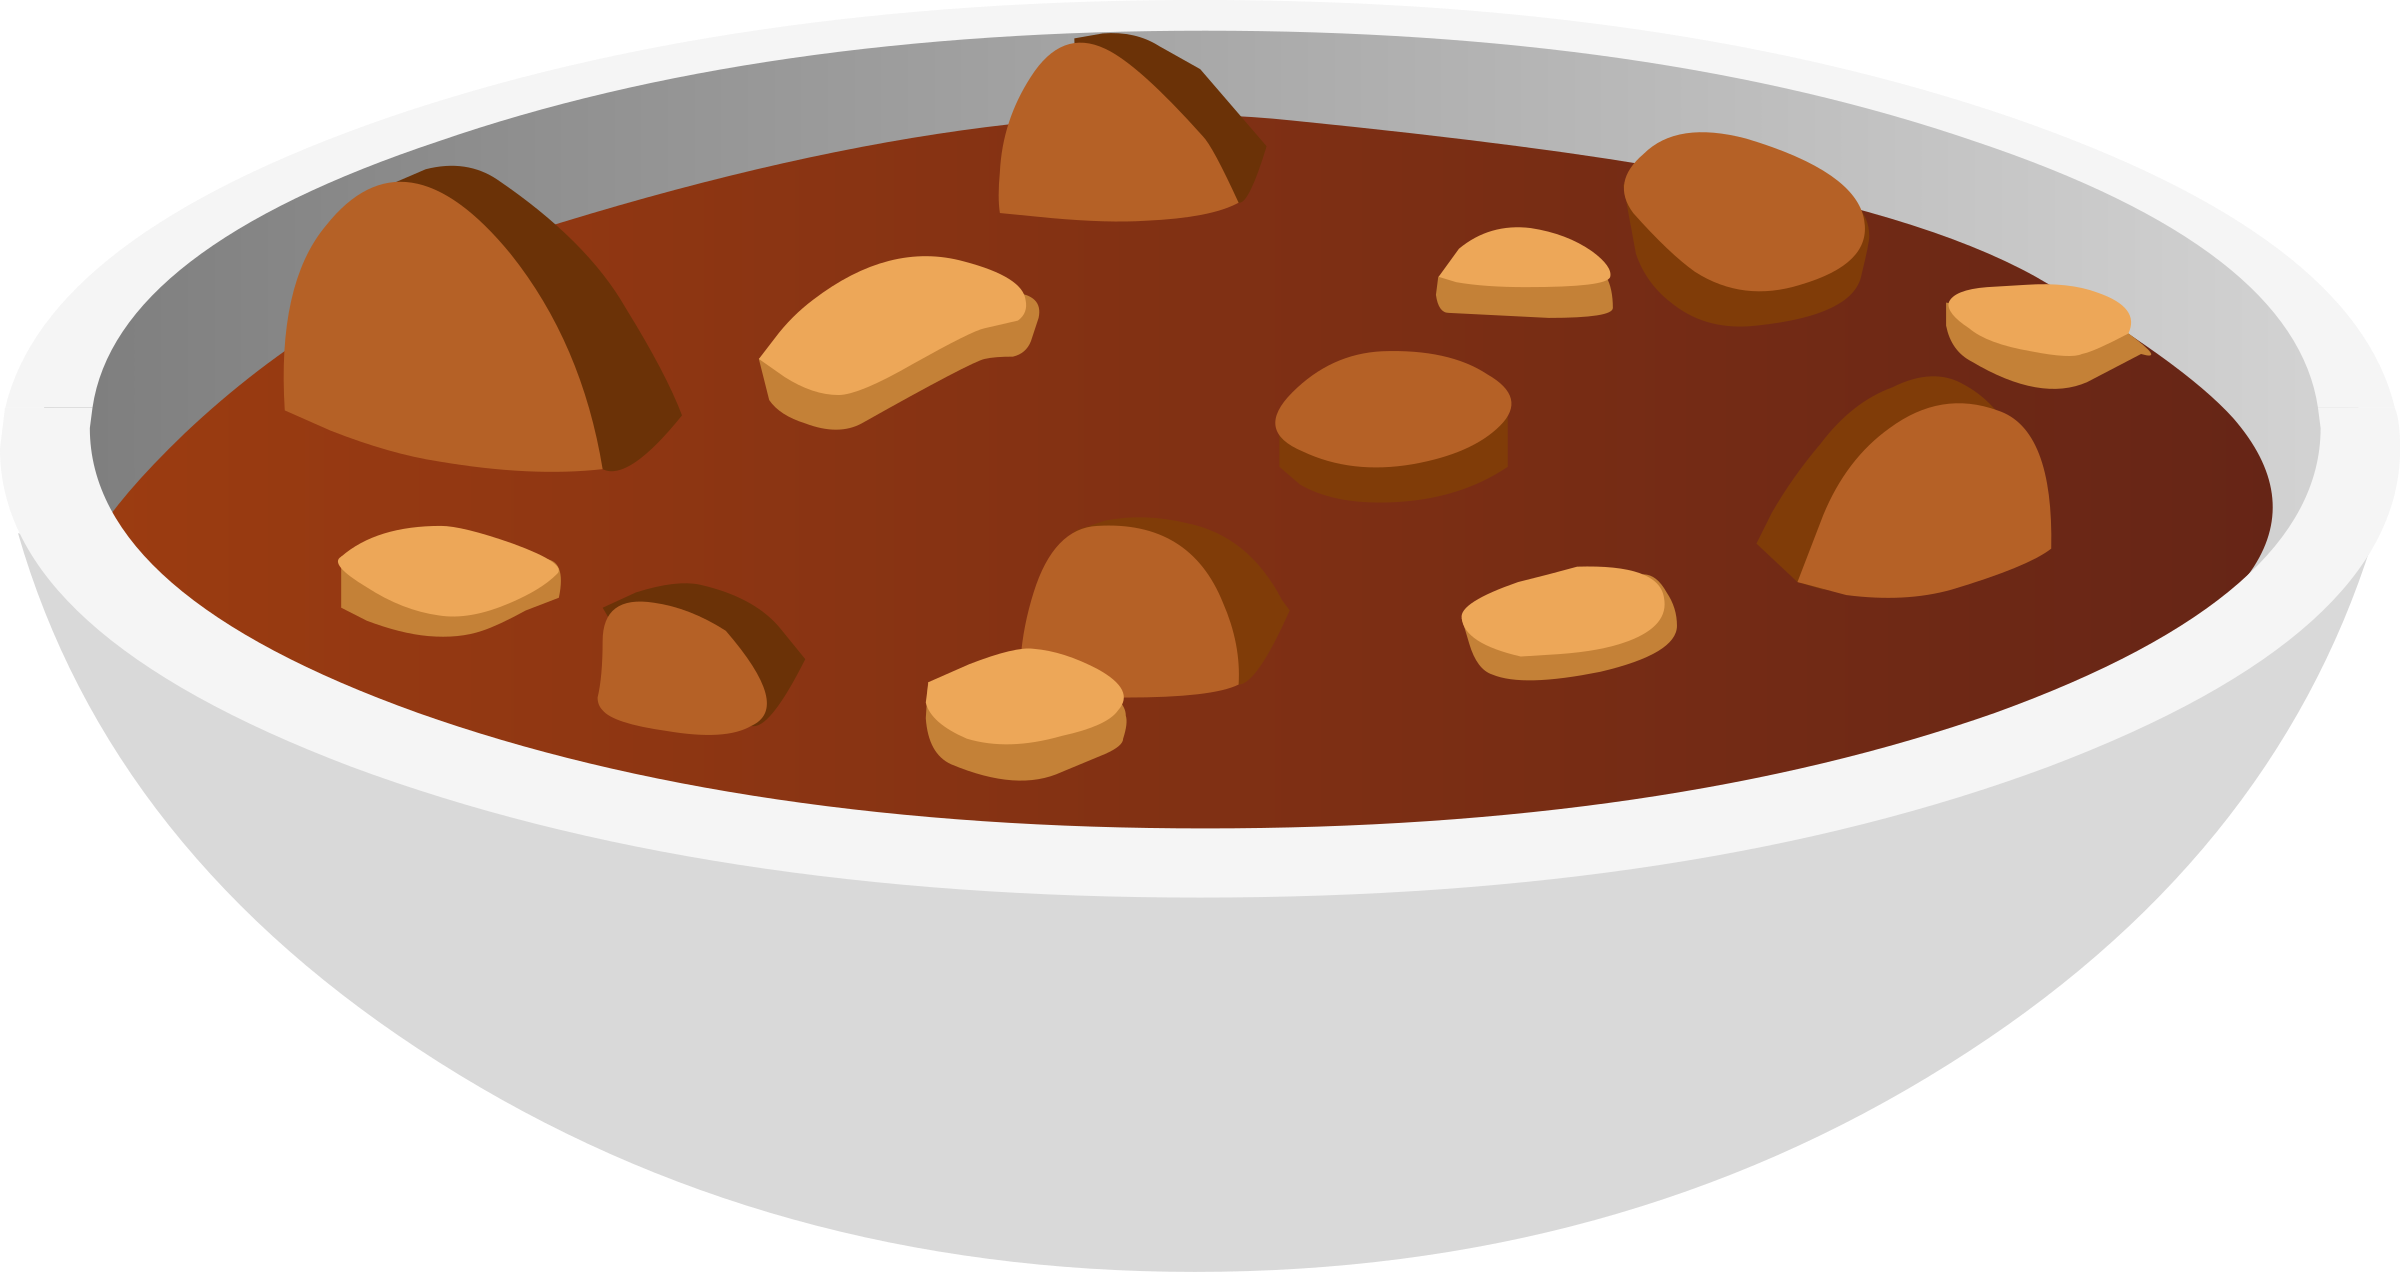 Food gumbo icons png. Foods clipart meat